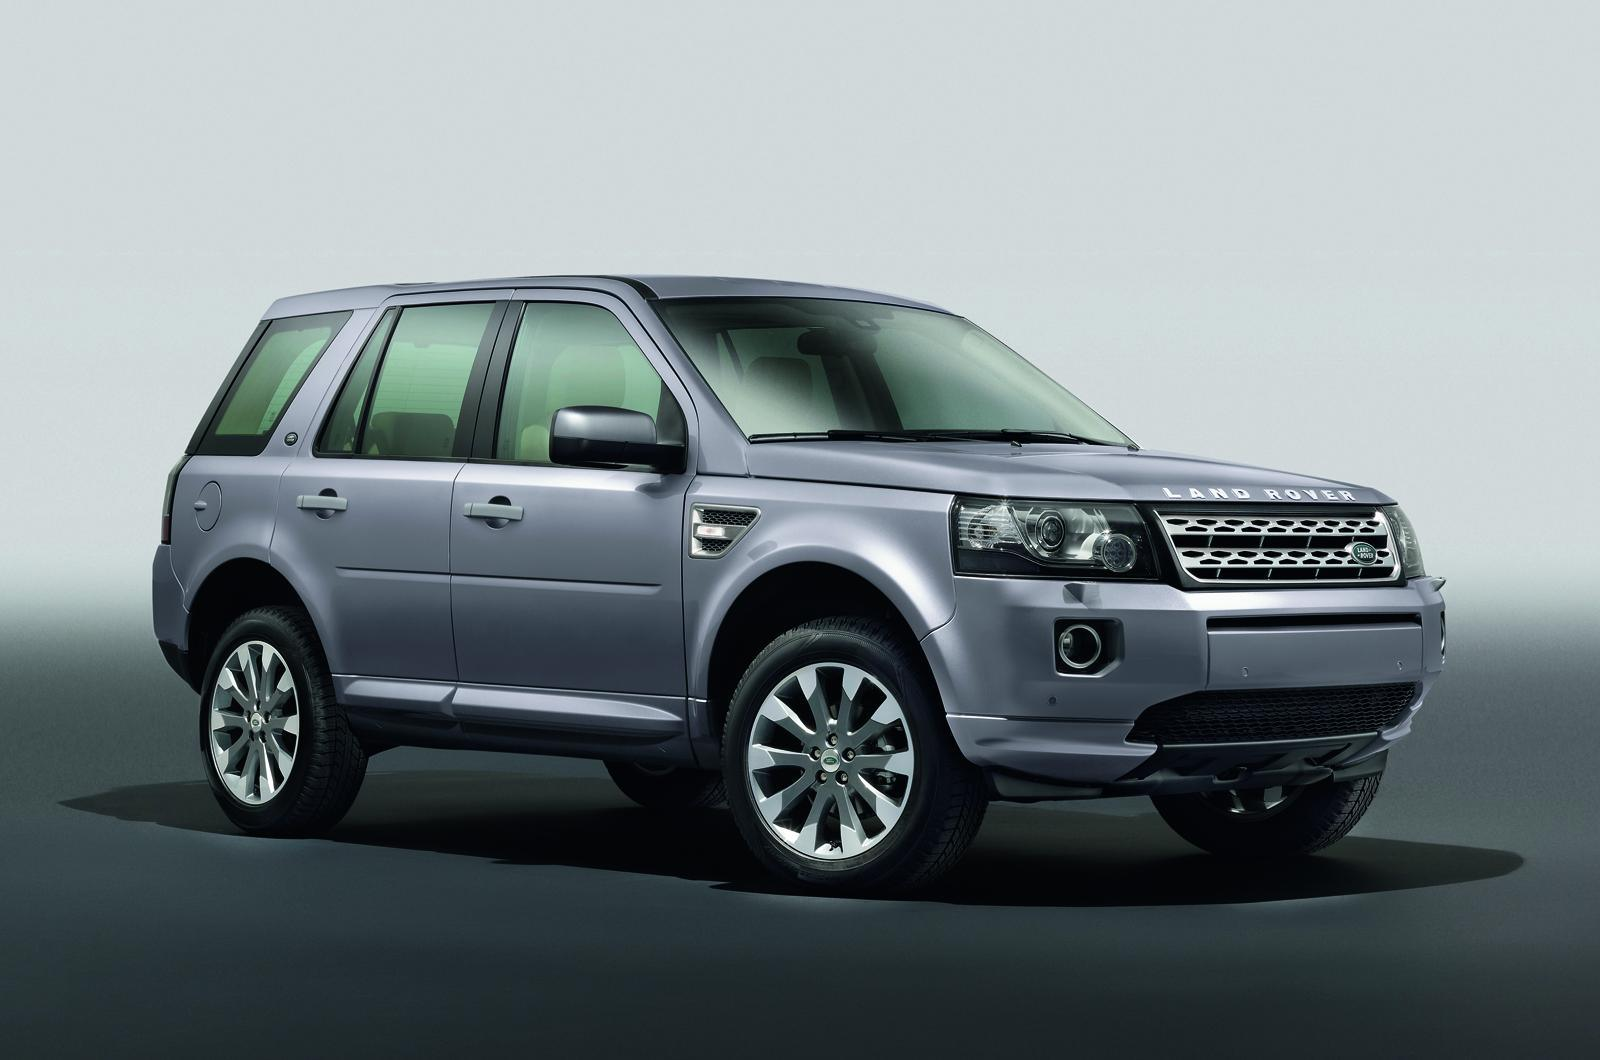 discovery price luxury new landrover wiki freelander sport rover land hse wikipedia